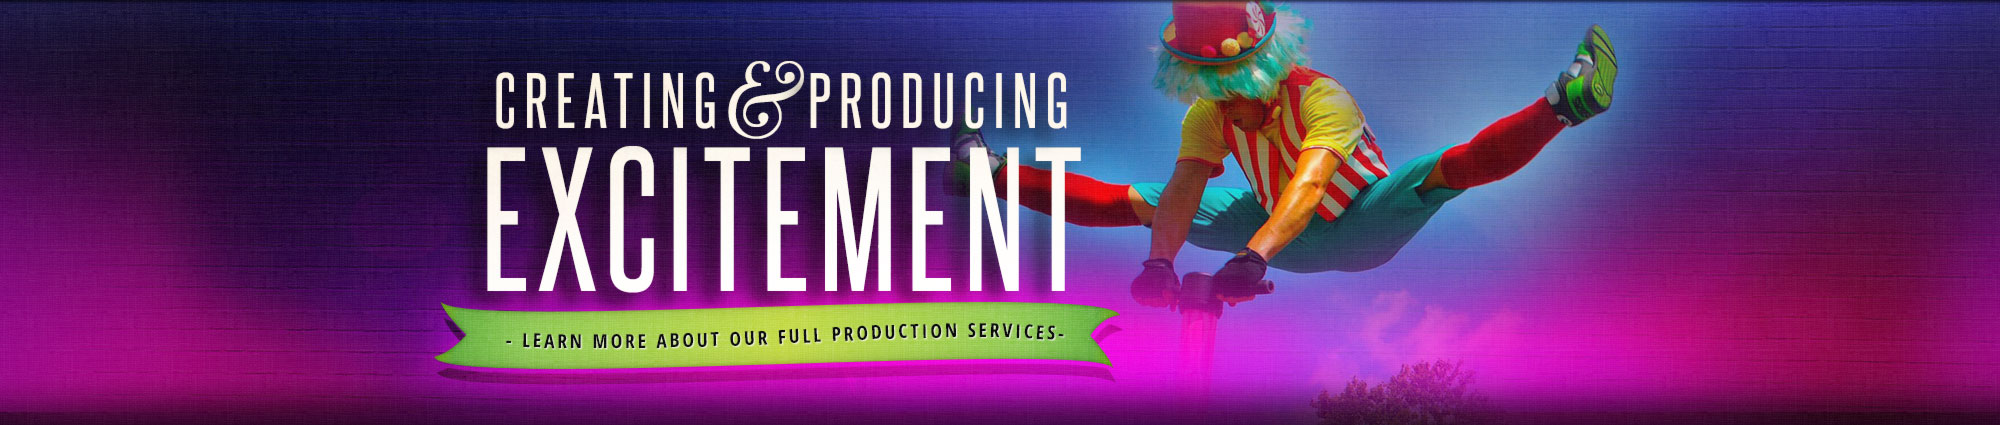 Creating & Producing Excitement